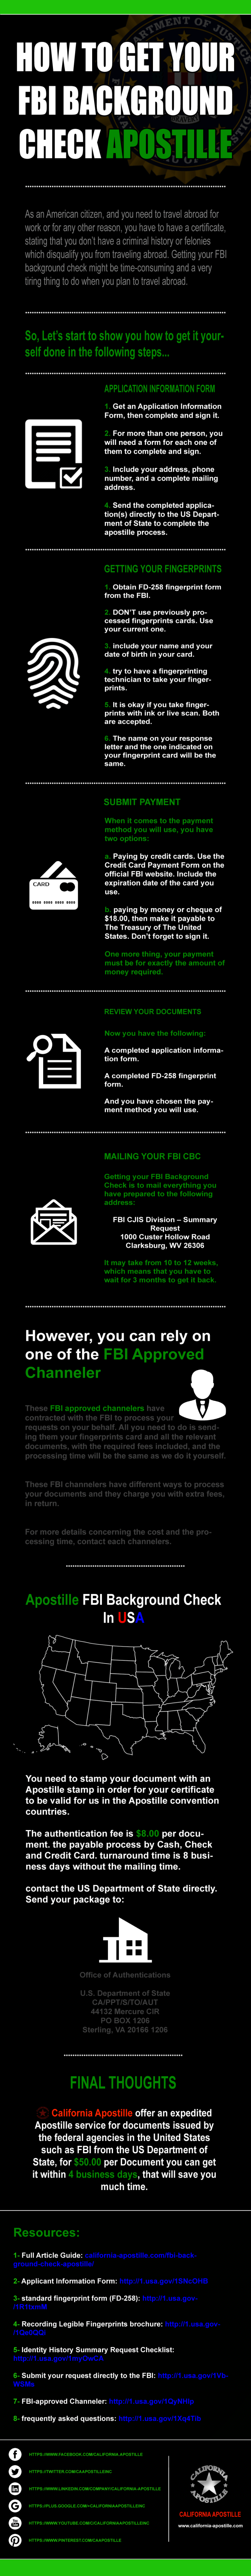 To Get Your Fbi Background Check There Are Some Steps Come First Before Getting The Apostille Stamp Follow Background Check Free Background Check How To Get